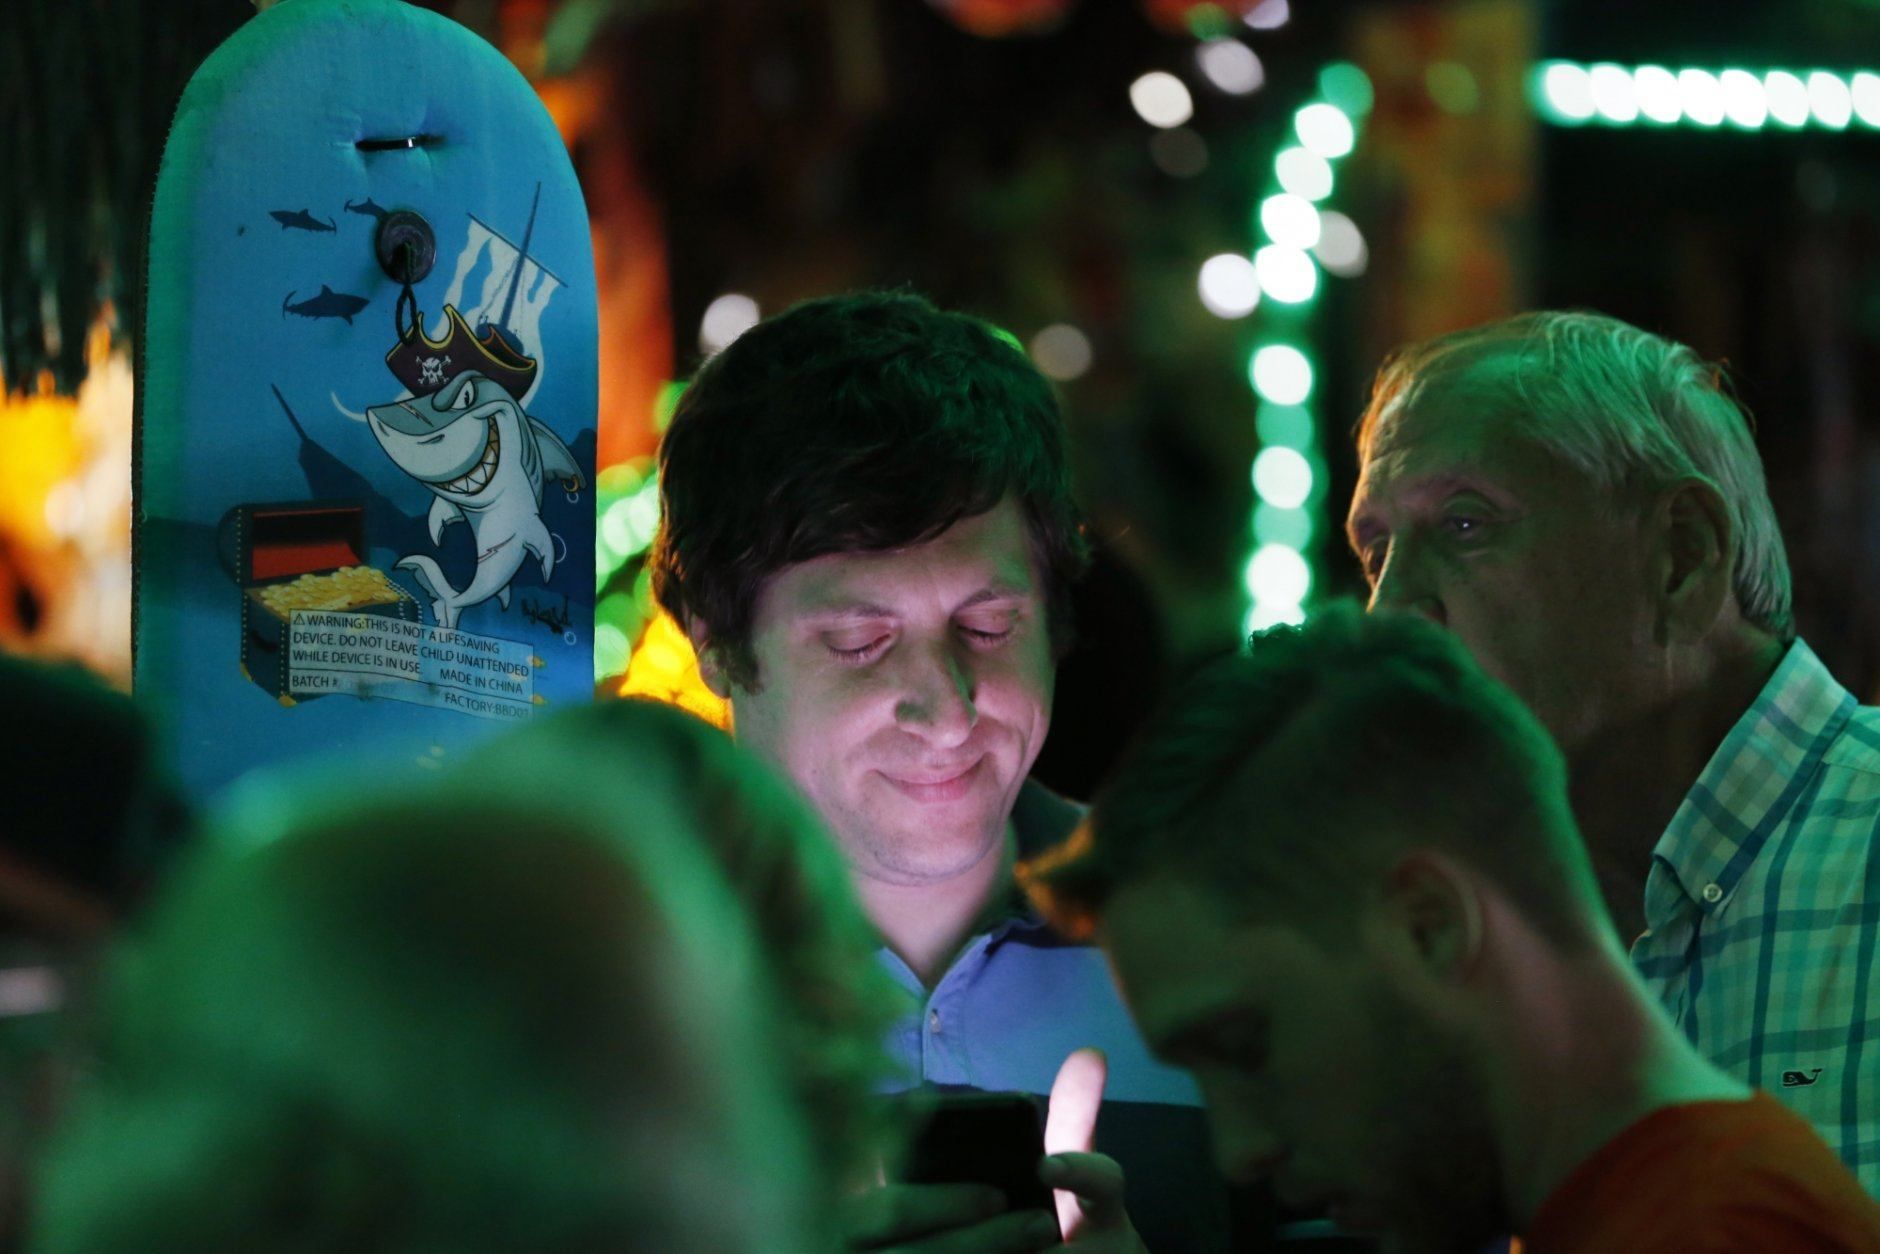 Supporters of state Sen. Richard Saslaw, D-Fairfax, are illuminated by cell phone screens as they check results at an election party in Springfield, Va., Tuesday, June 11, 2019. Saslaw is in a close race with his first primary opponent in 39 years. (AP Photo/Steve Helber)